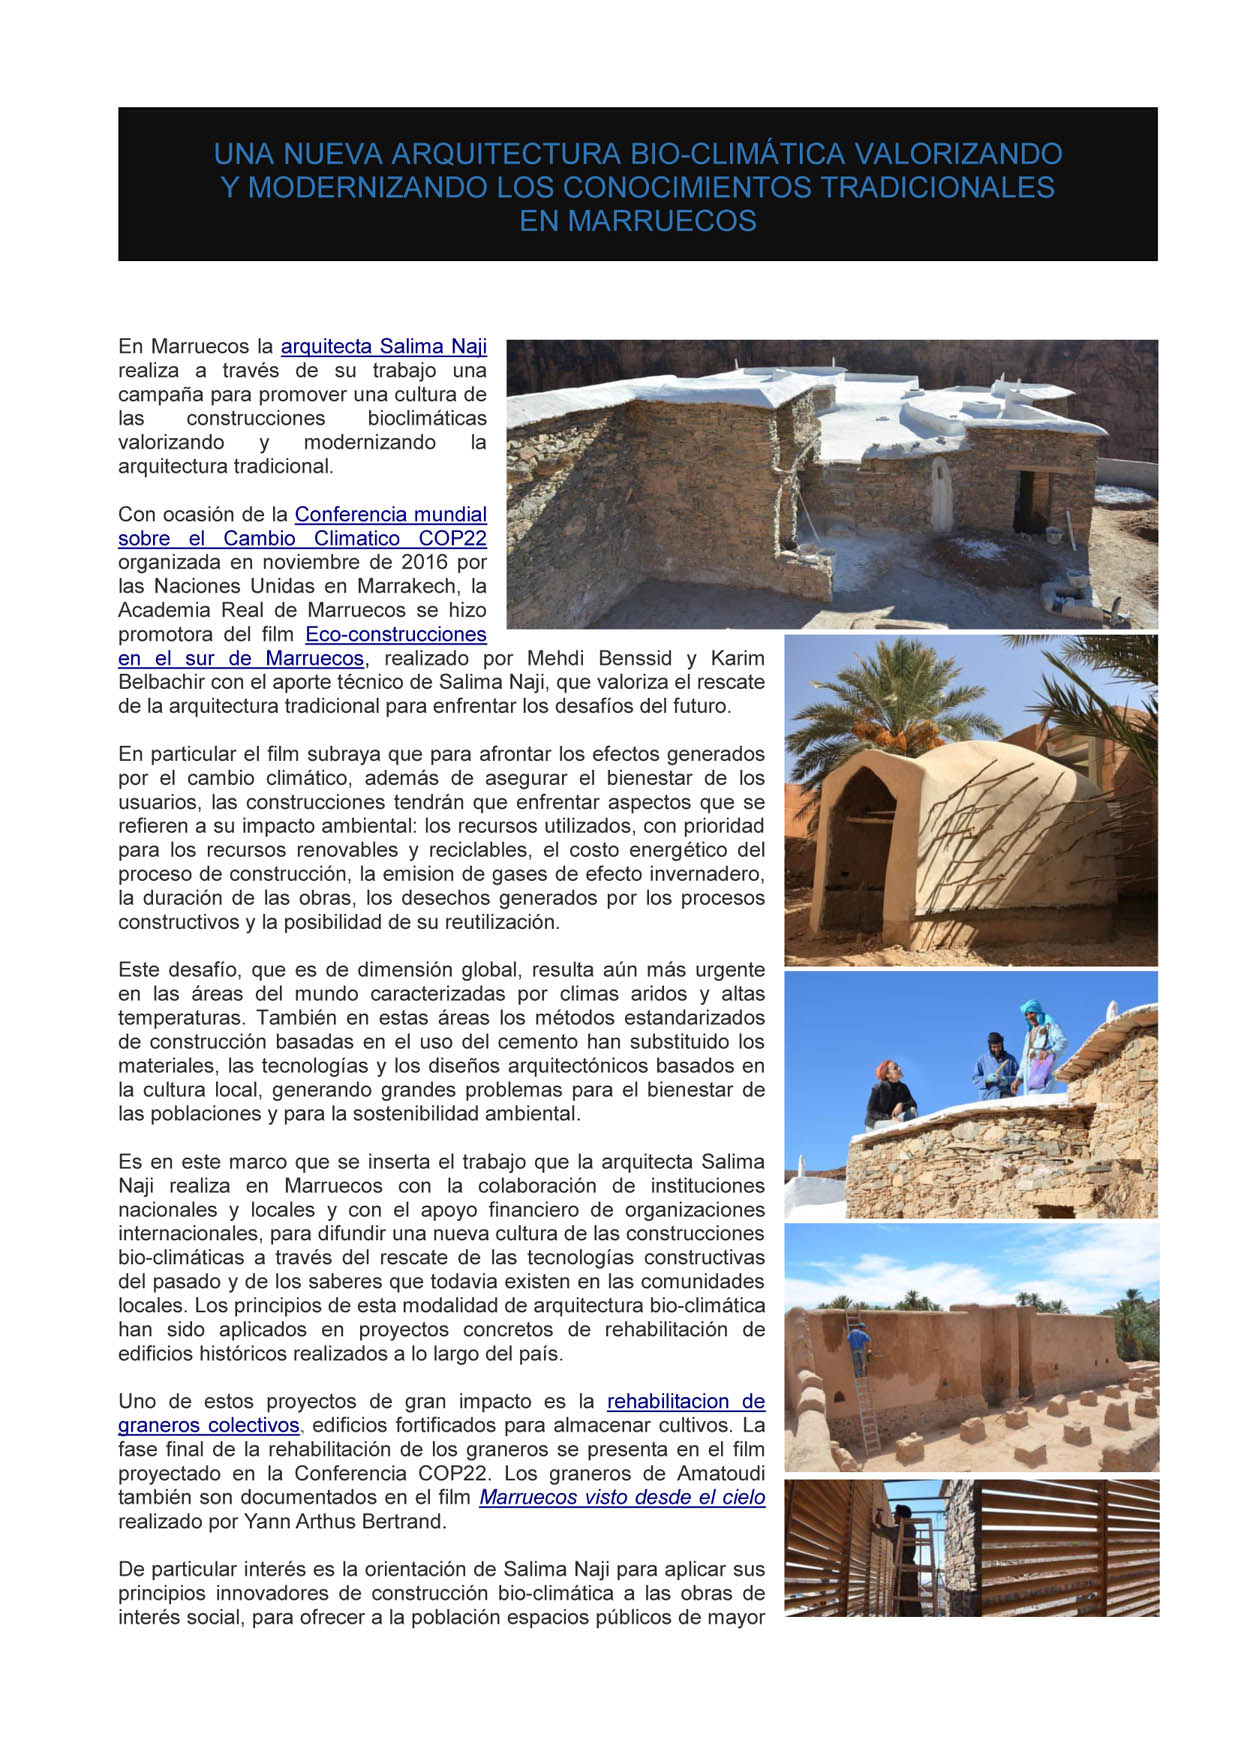 ArchitectureBioclimatiqueMaroc-ESP-1